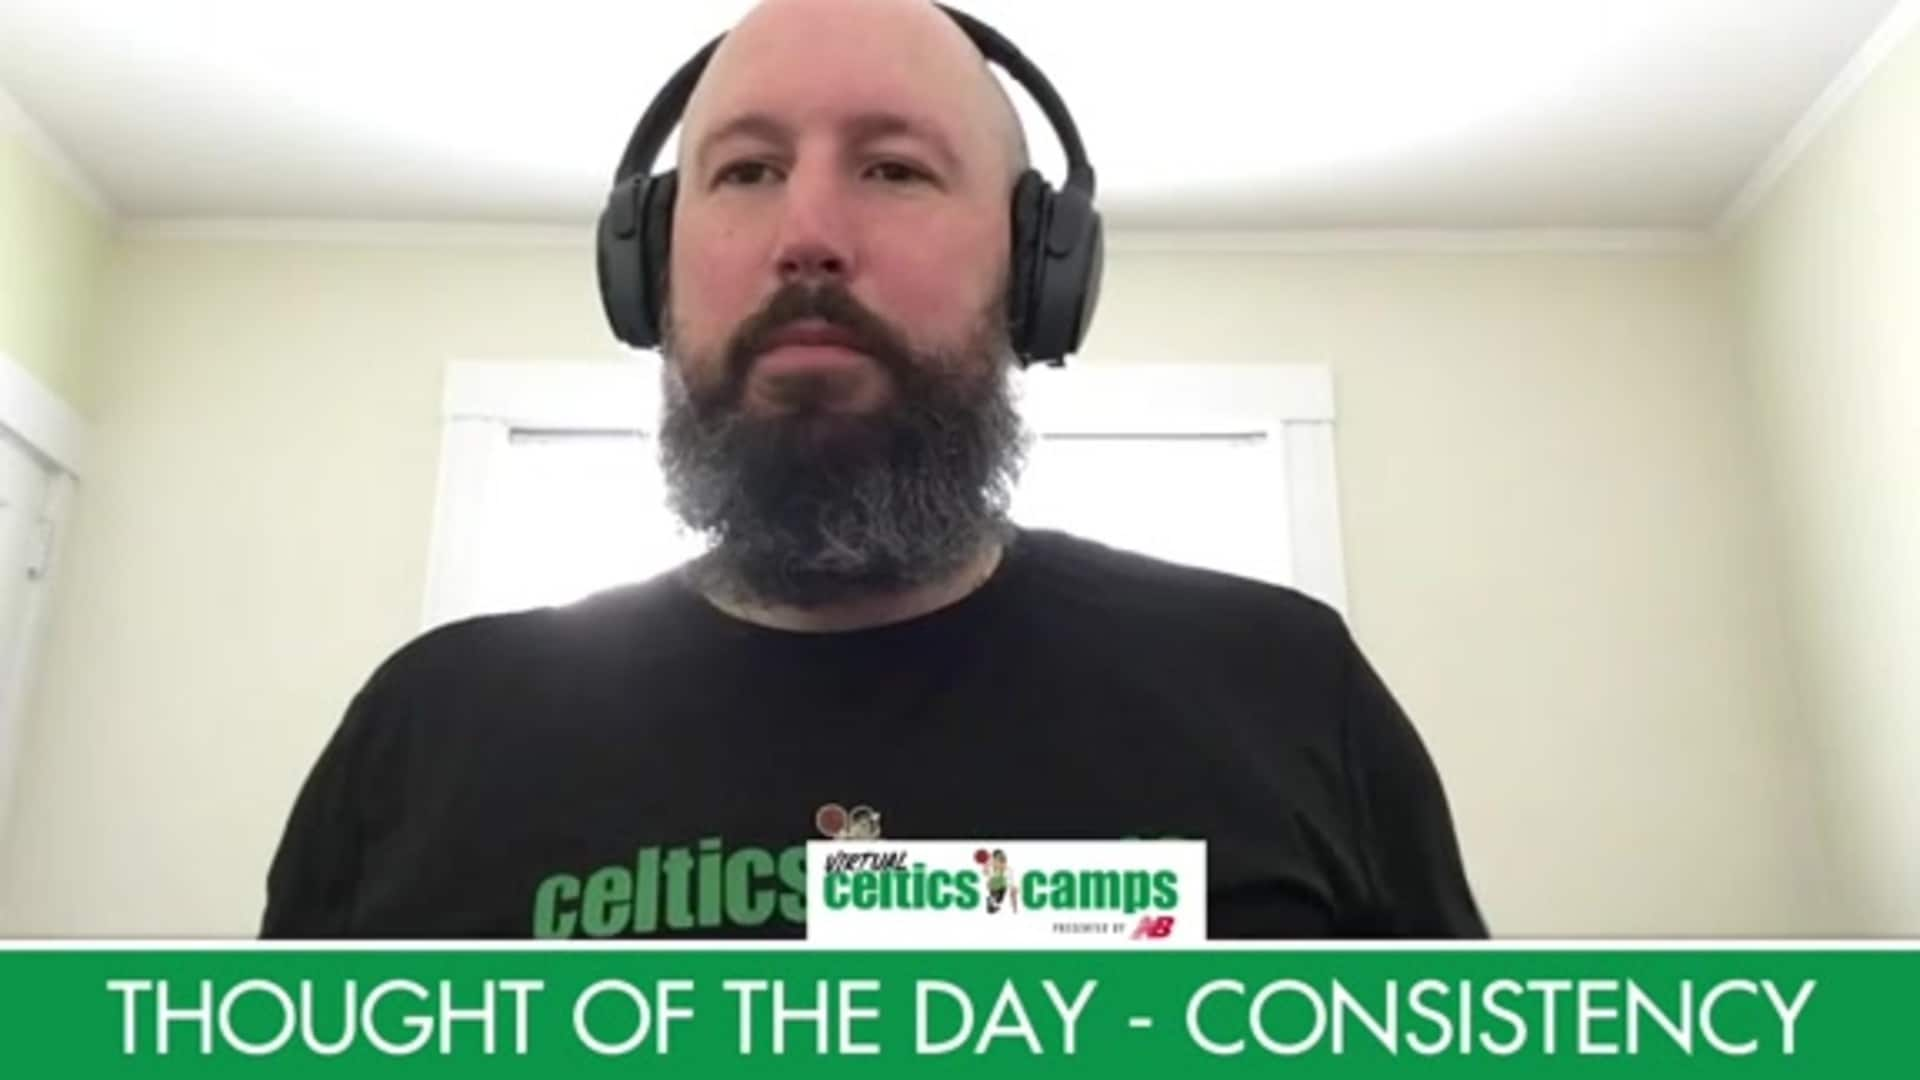 Virtual Celtics Camps - Thought of the Day Consistency